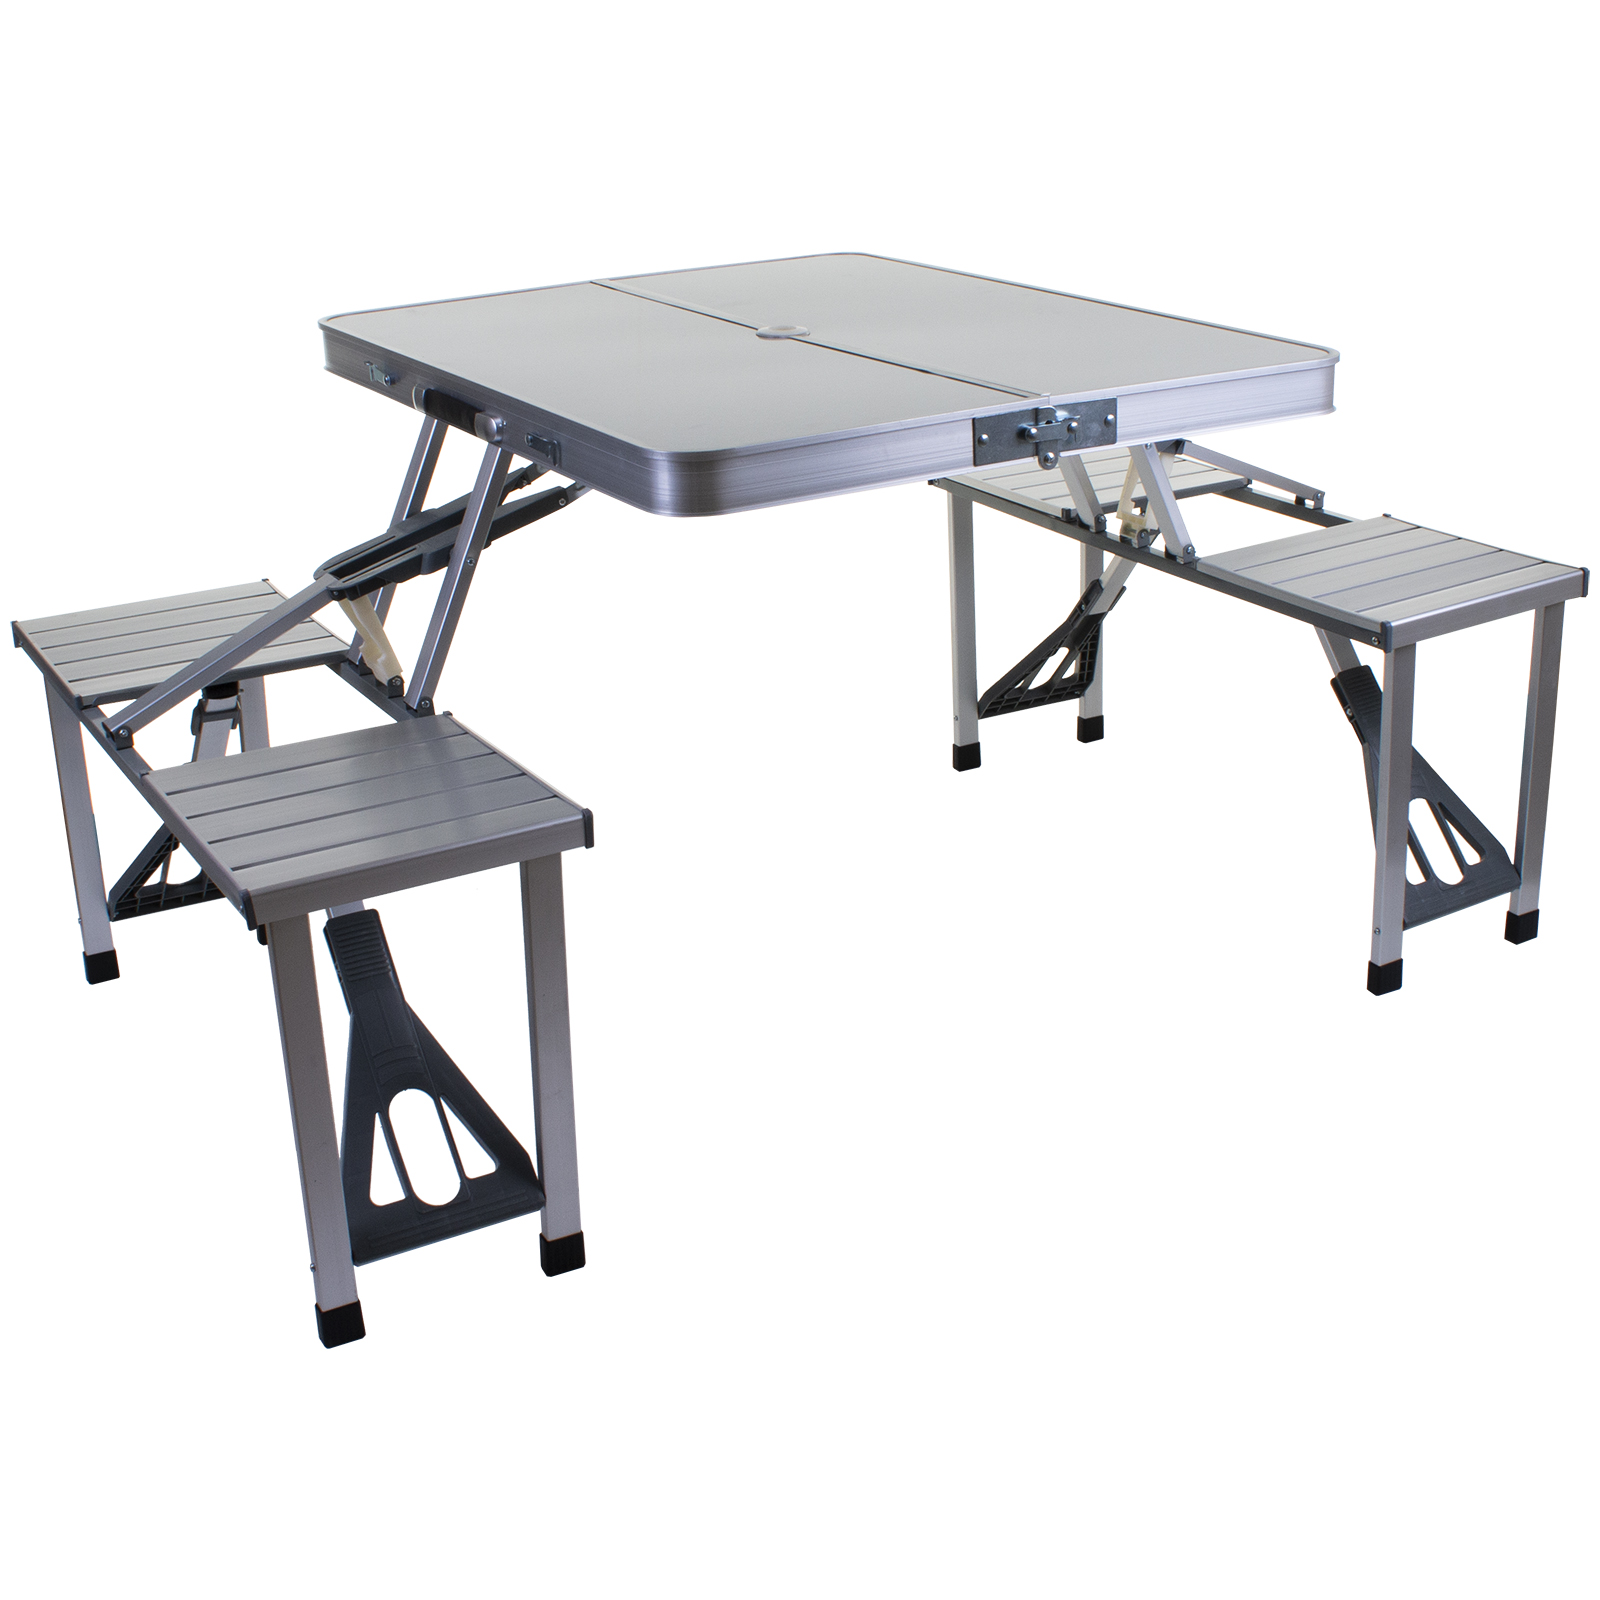 Buy Folding Picnic Table and Stools